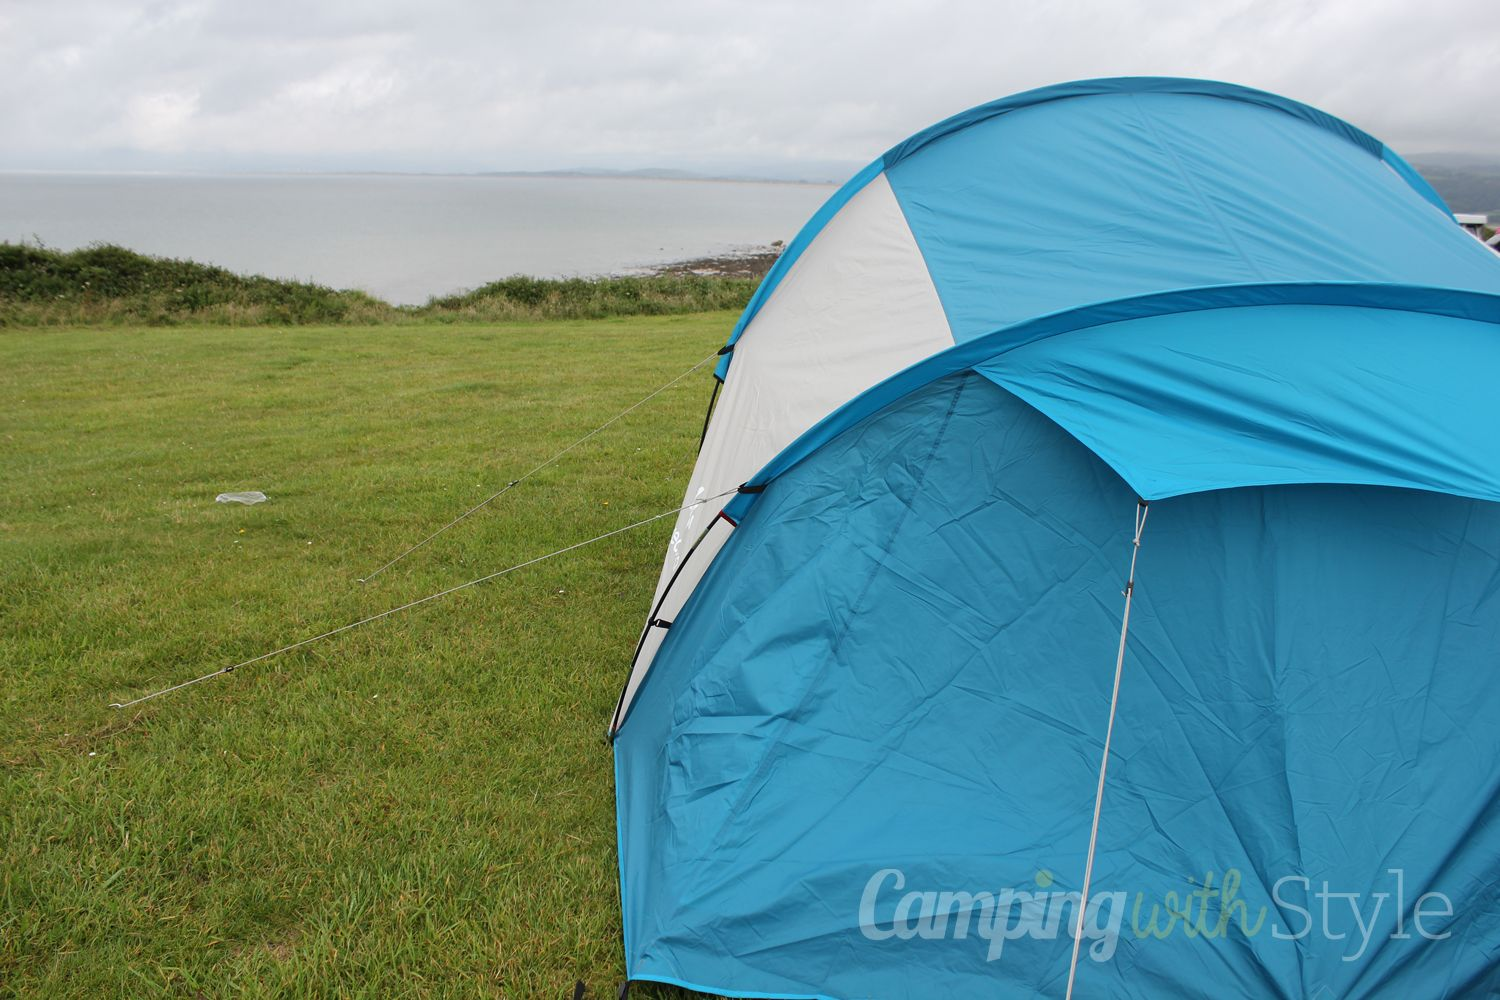 Fall in love with camping  - tips for people who hate camping!